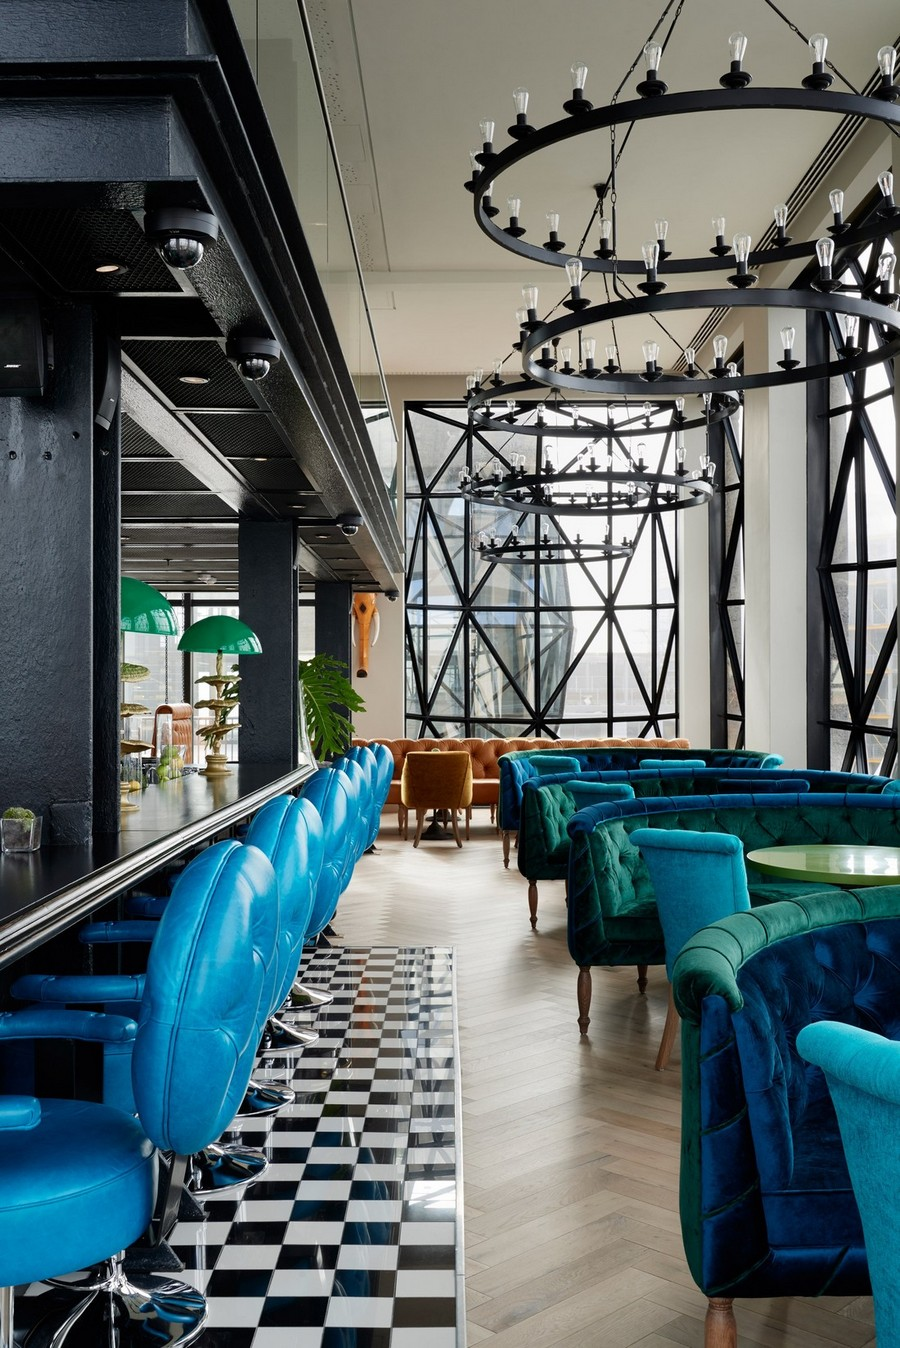 2-6-remade-building-in-South-Africa-Cape-Town-Royal-Portfolio-Hotel-ex-grain-elevator-interior-lobby-bar-restaurant-black-and-white-chessboard-floor-tiles-blue-leather-bar-stools-velvet-curved-couches-sofas